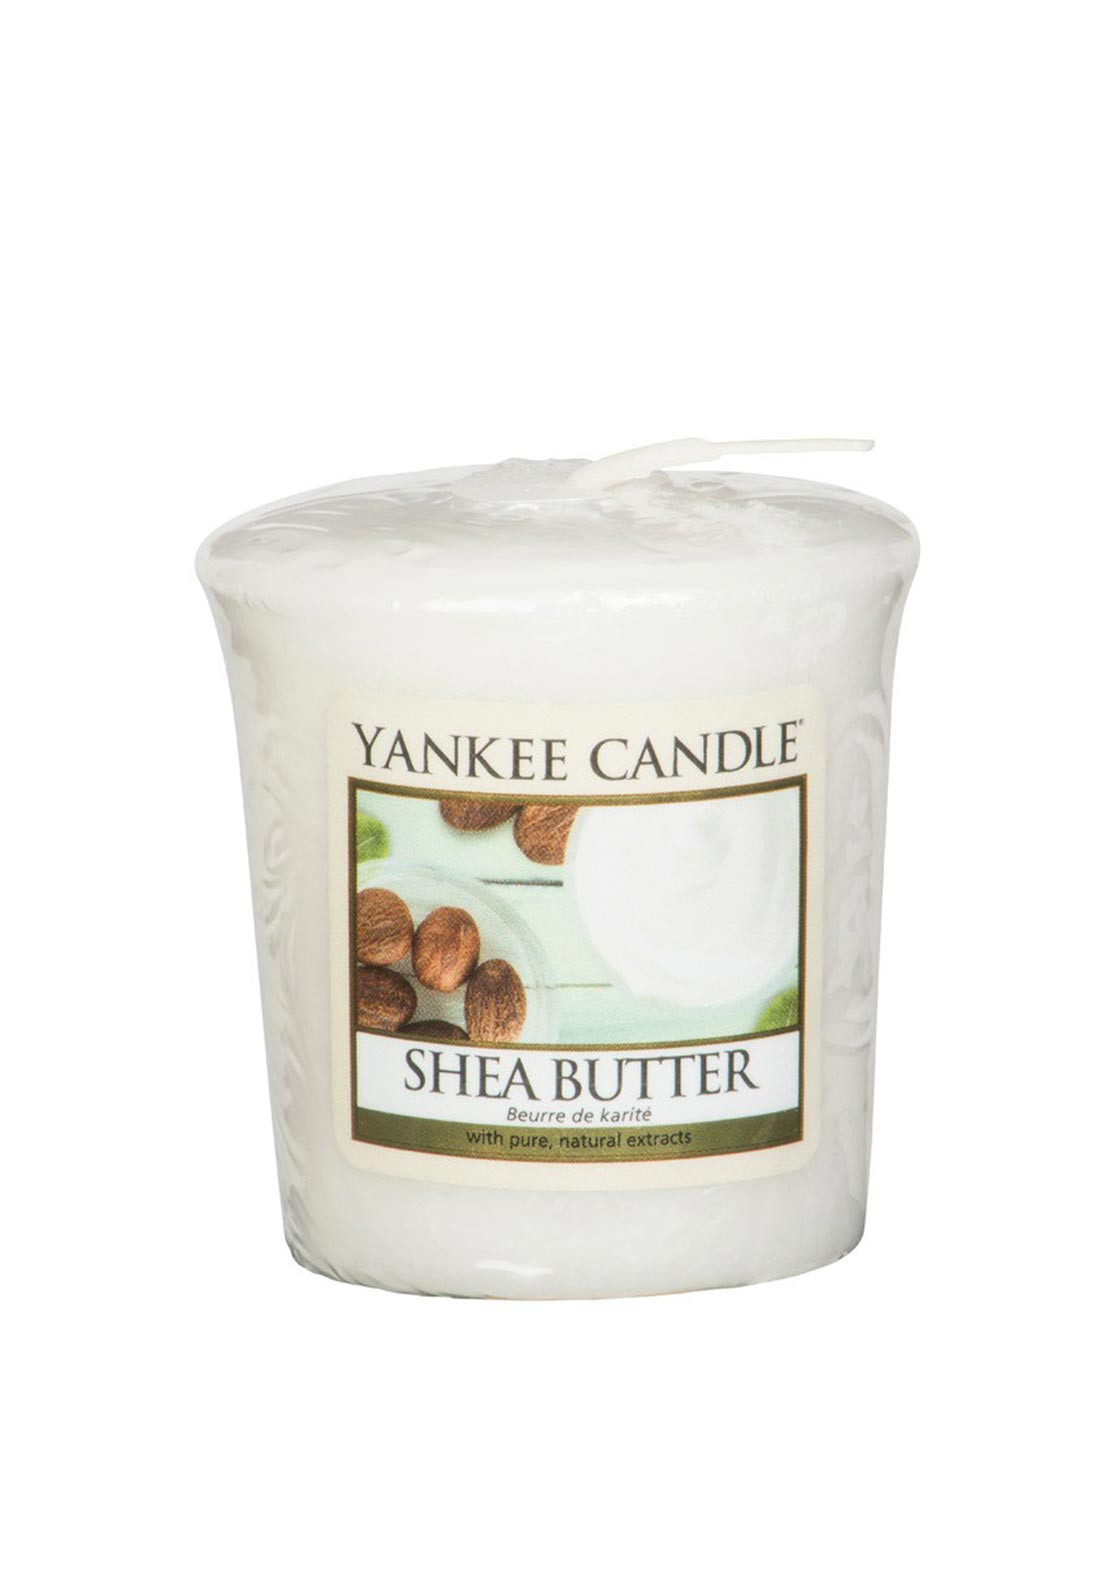 Yankee Candle Sample Votive Candle, Shea Butter